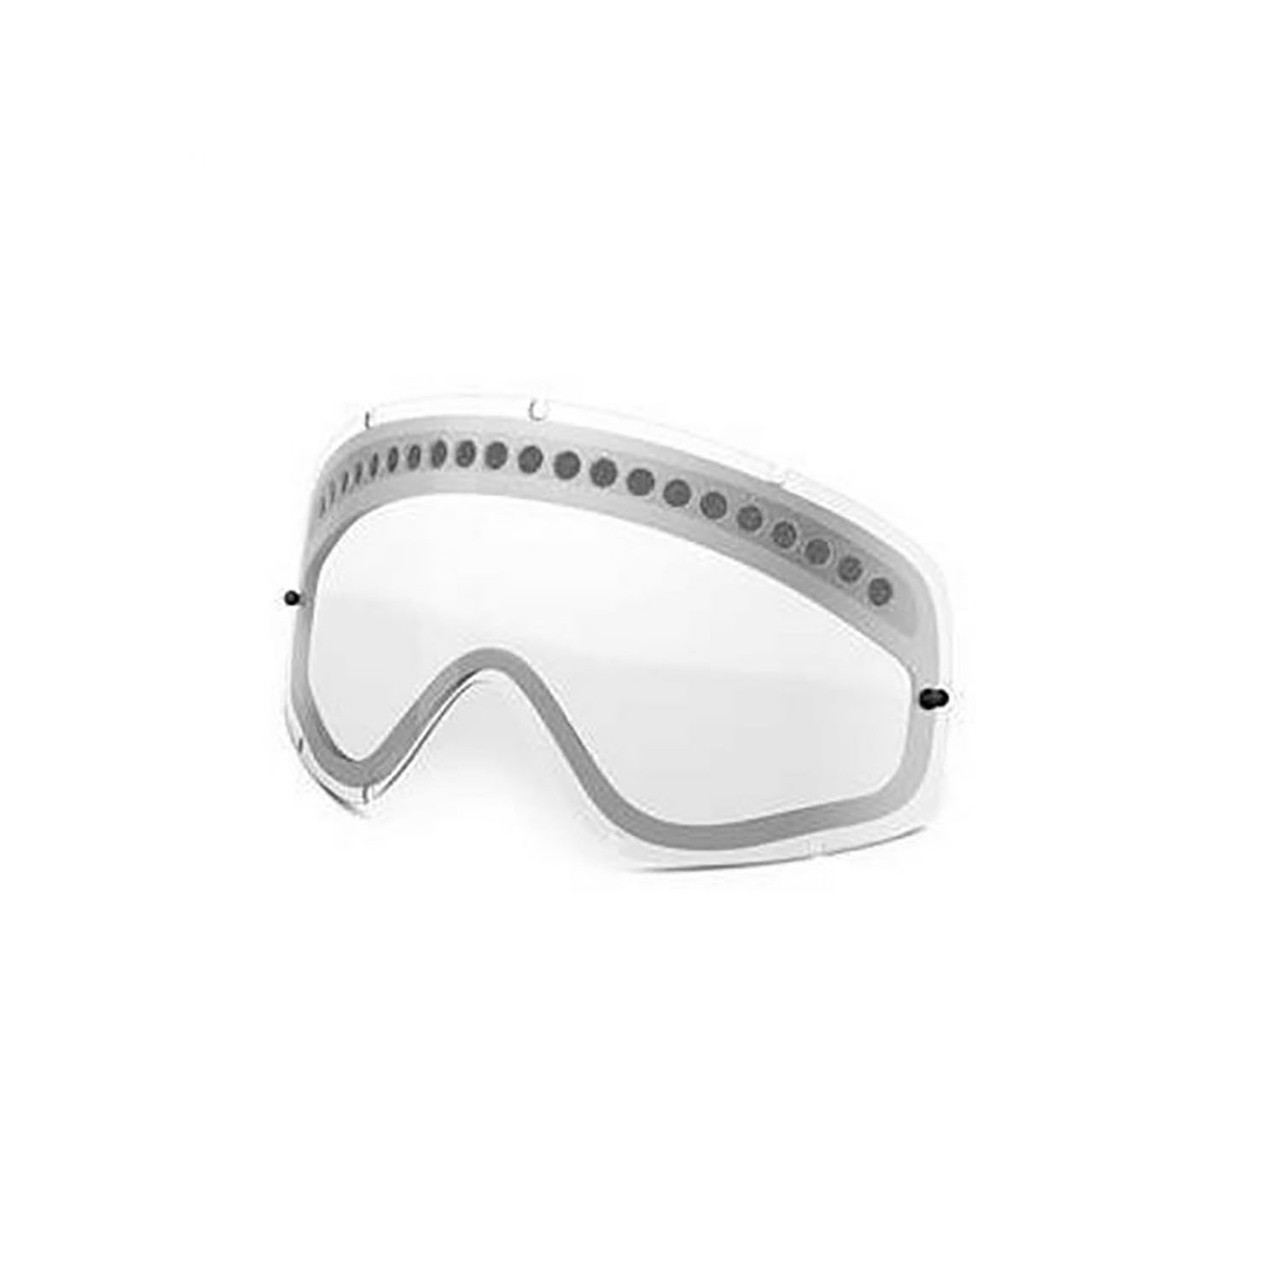 379a9553037 Oakley Replacement Lens O Frame 2.0 MX (Clear) Dual Pane - Race FX B2B